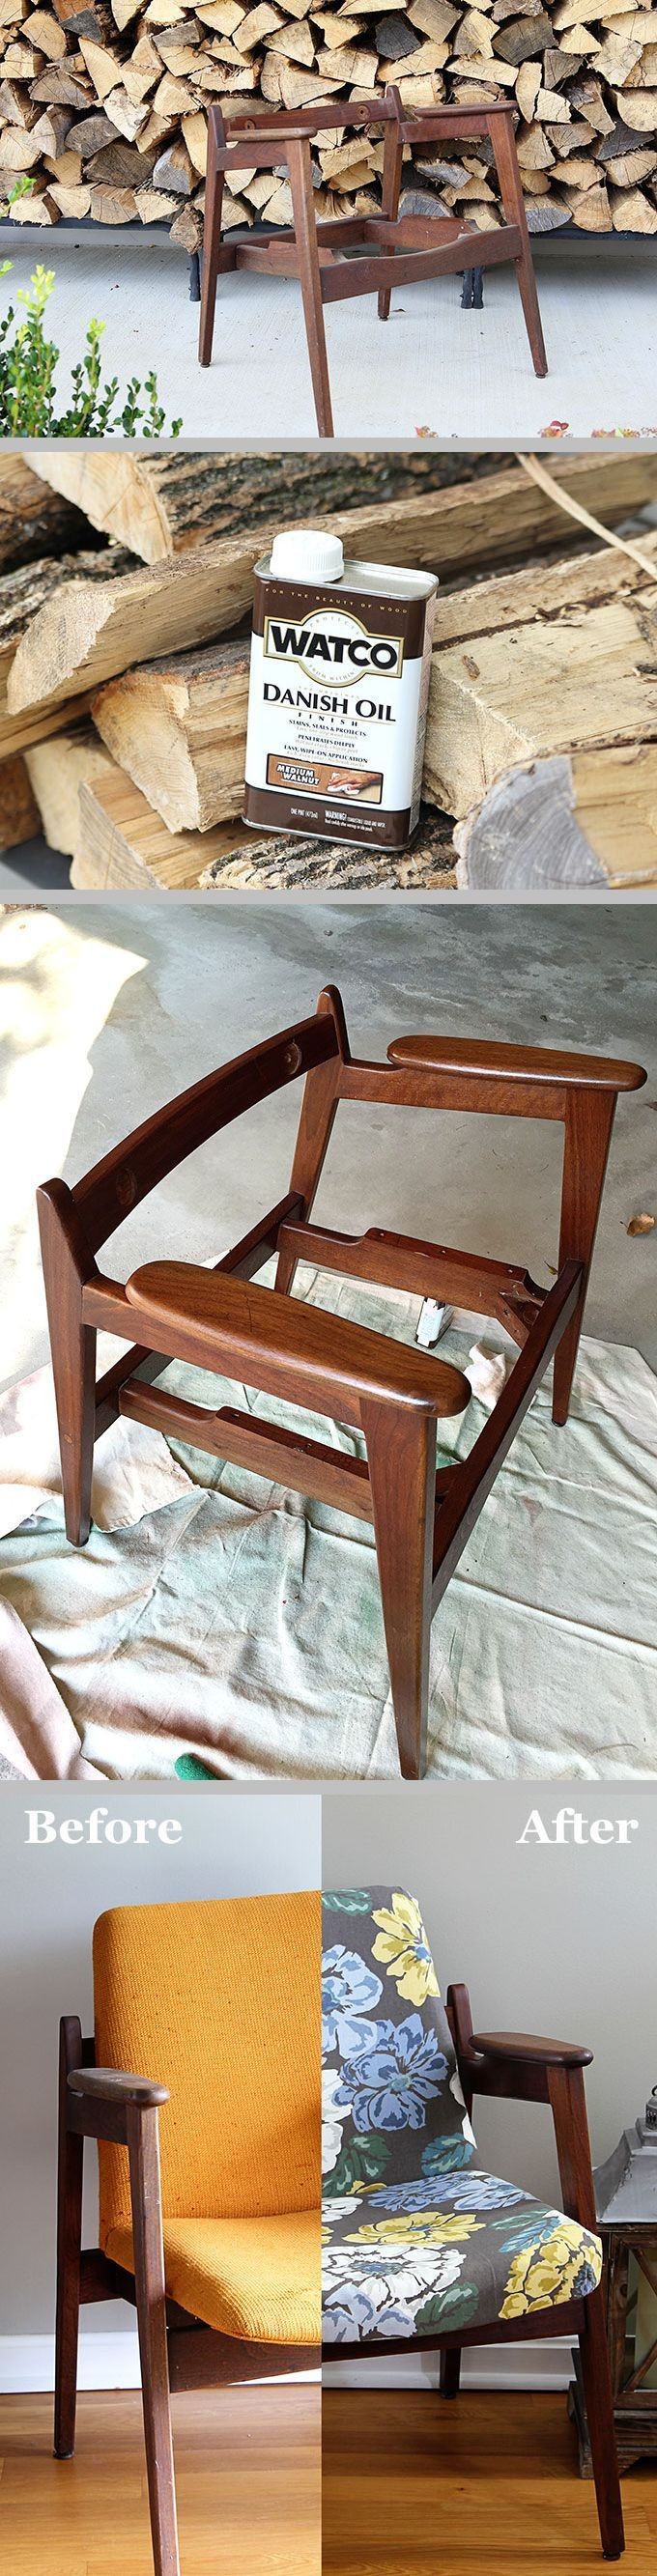 Mid-Century Modern Chair Restoration ~ Step-by-step restoring & reupholstering tutorial. Watco Danish Oil stains, seals & protects in one step by soaking into the wood & enhancing the color from within, rather than just sitting on top of the wood. Gives more of a hand-rubbed oil finish rather than a stain with varnish-type of finish. Comes in different colors. #DIY